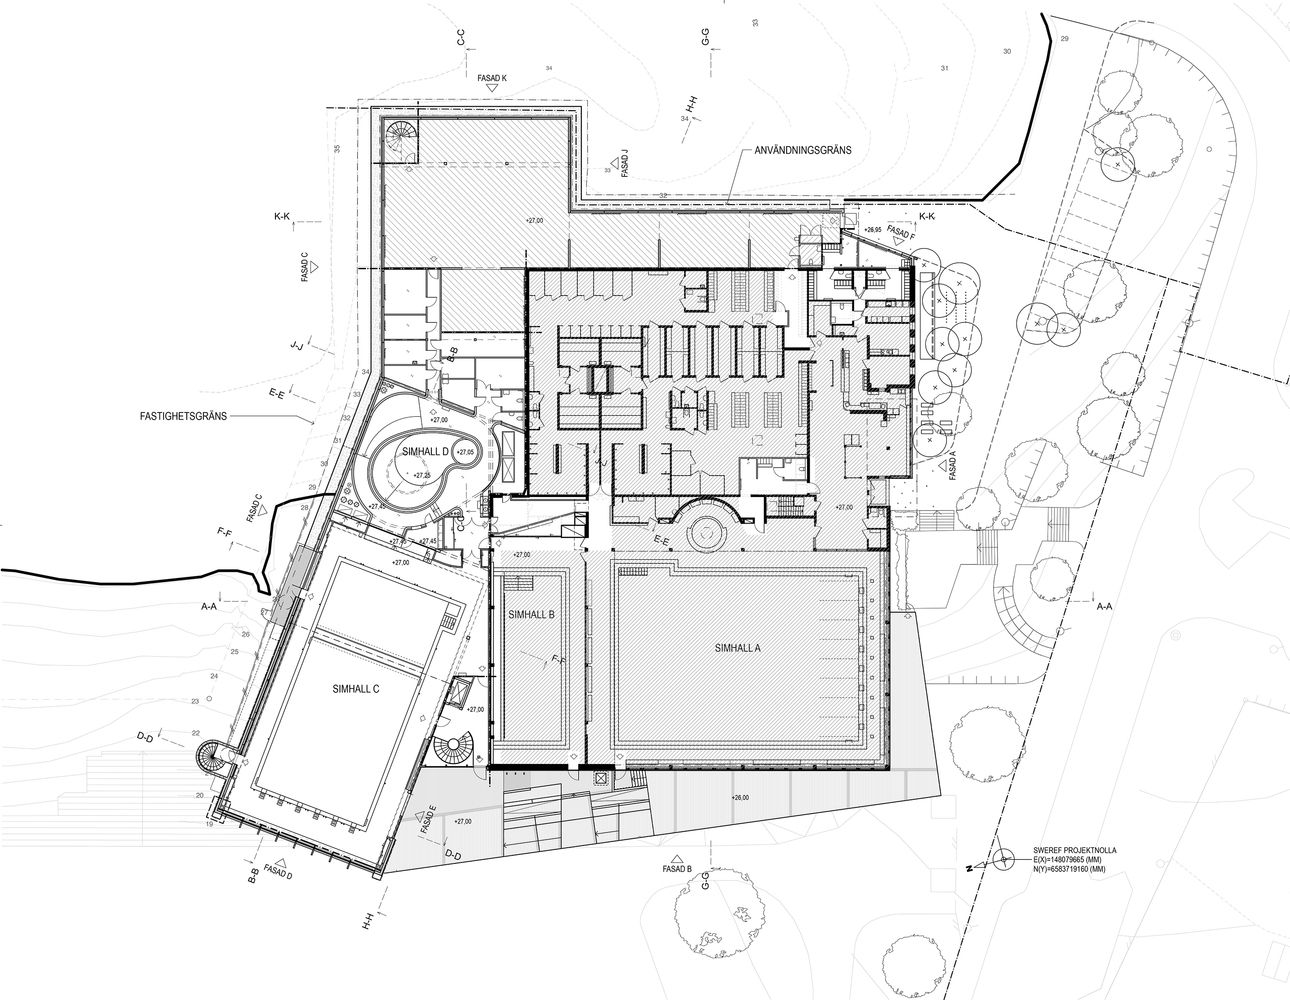 Gallery of indoor swimming pool for sundbyberg urban for Pool design drawings